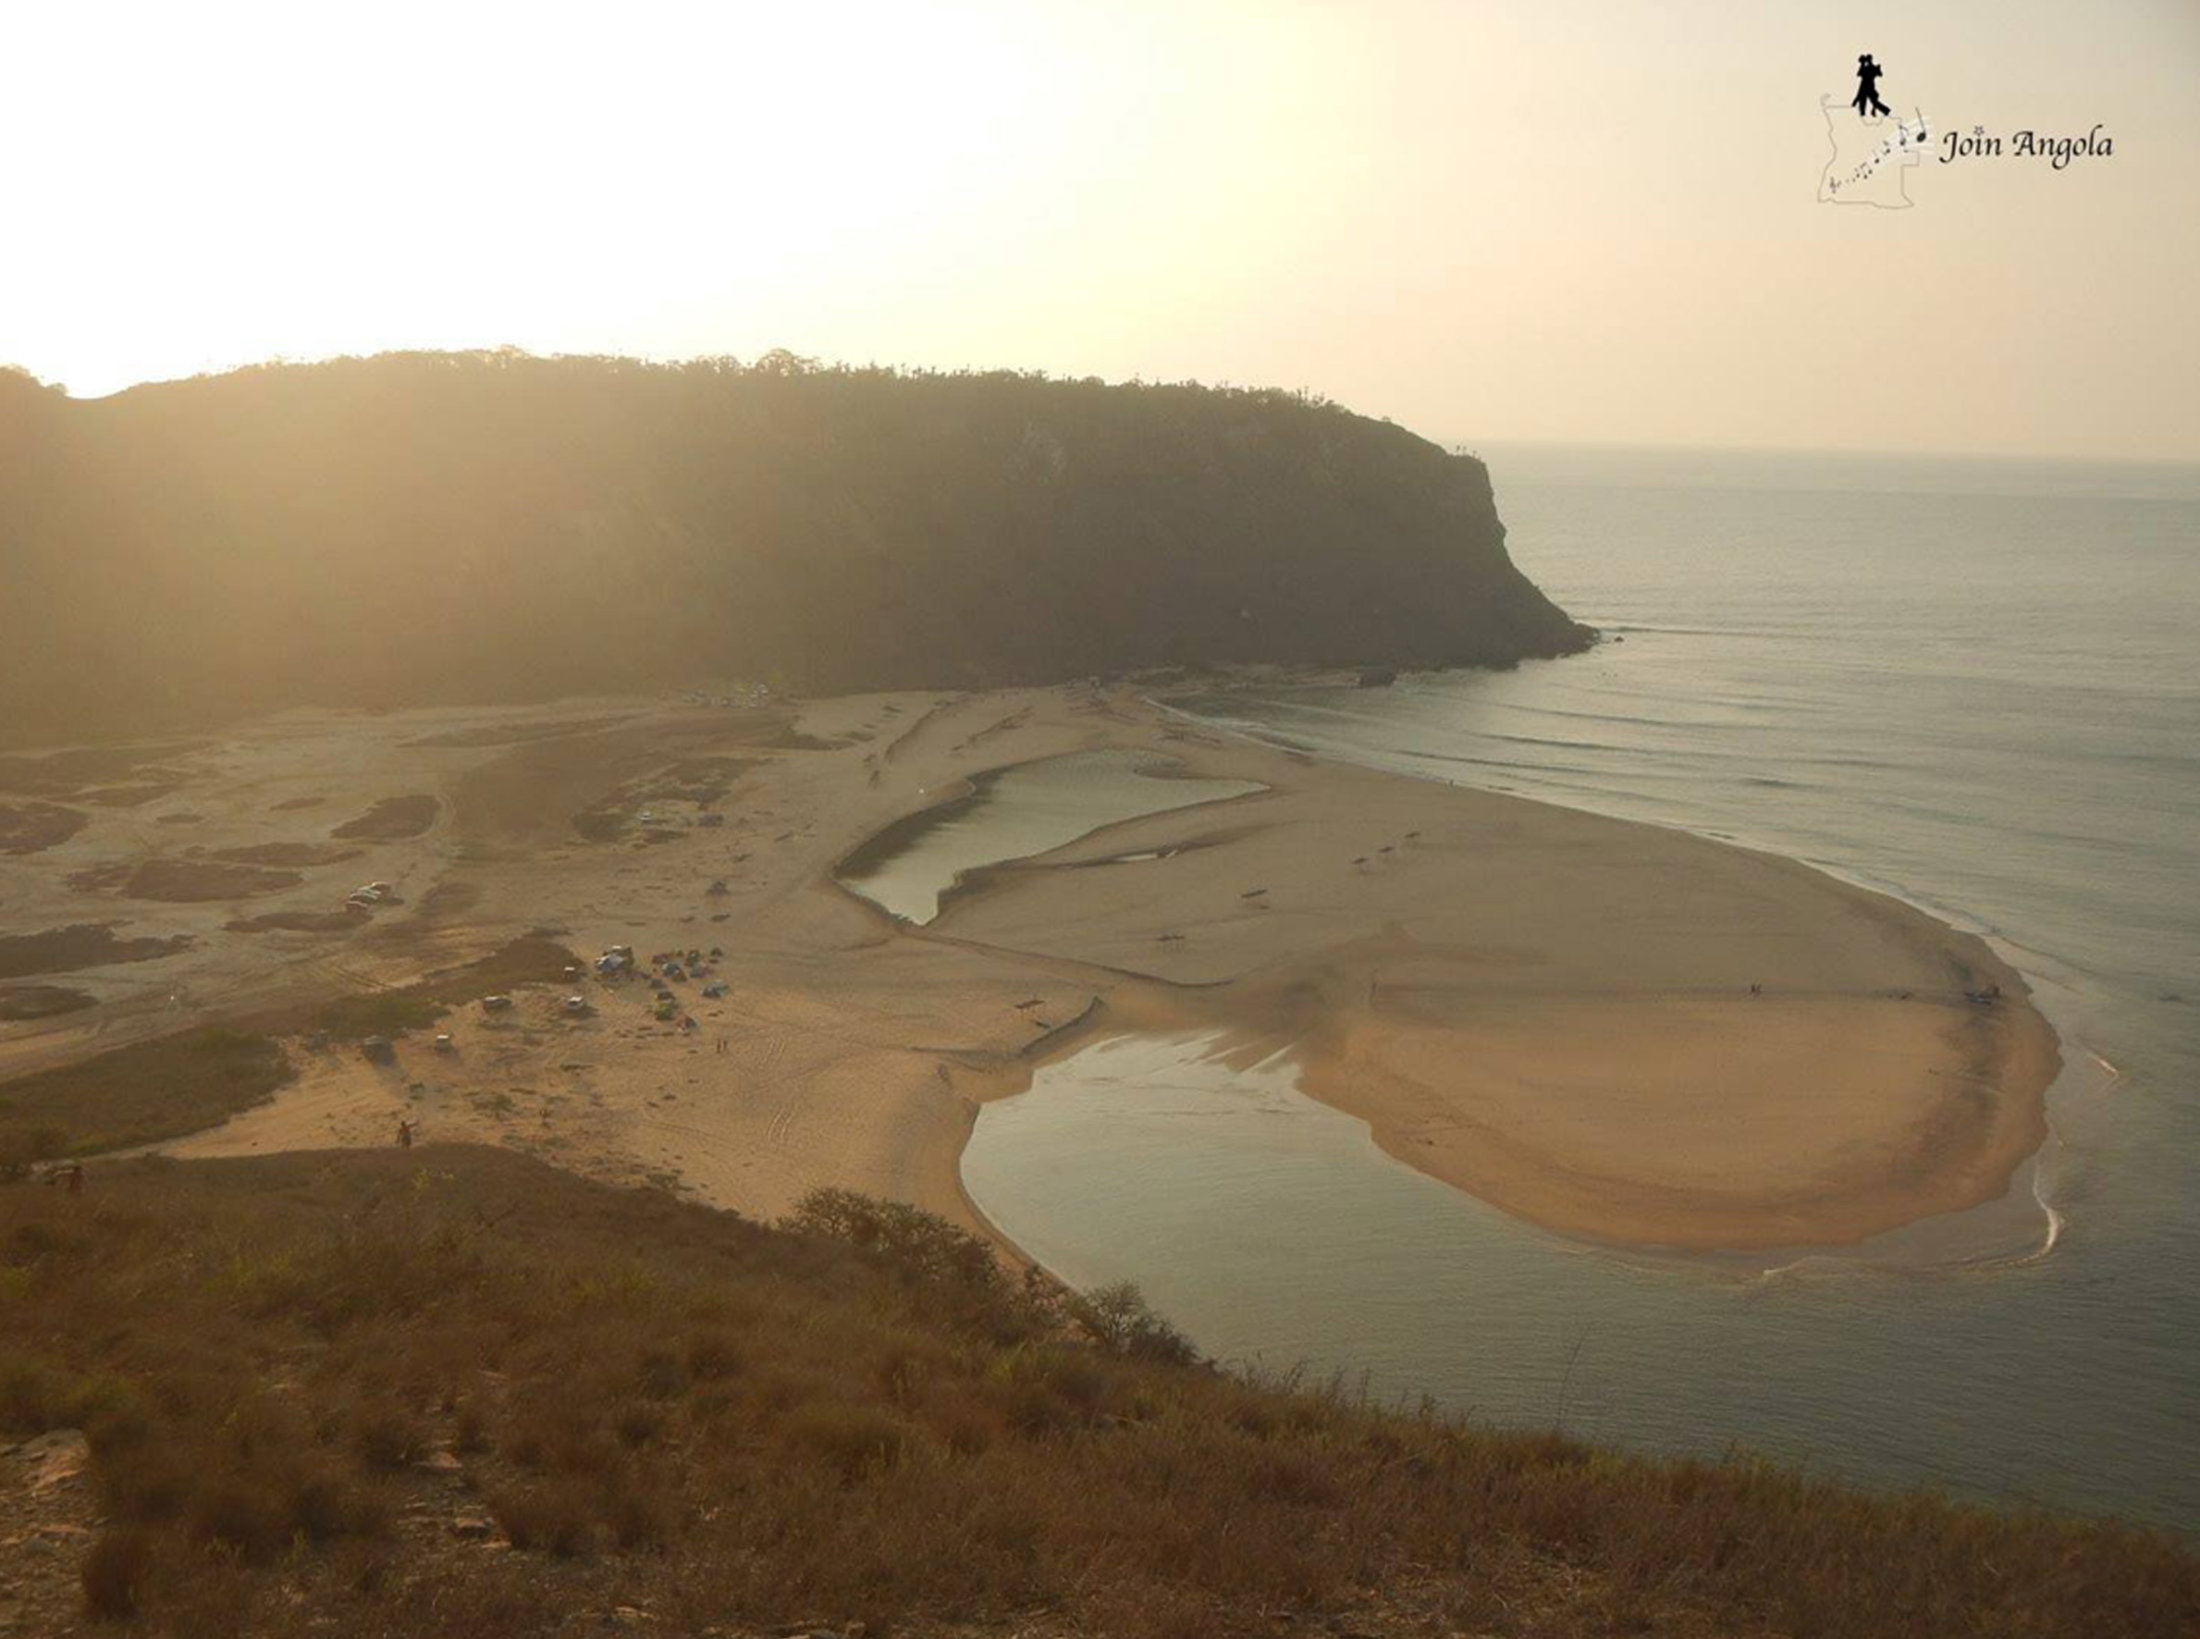 Cabo Ledo is around 120 km south of Luanda, in the Quiçama National Park, inside the Bengo Province.